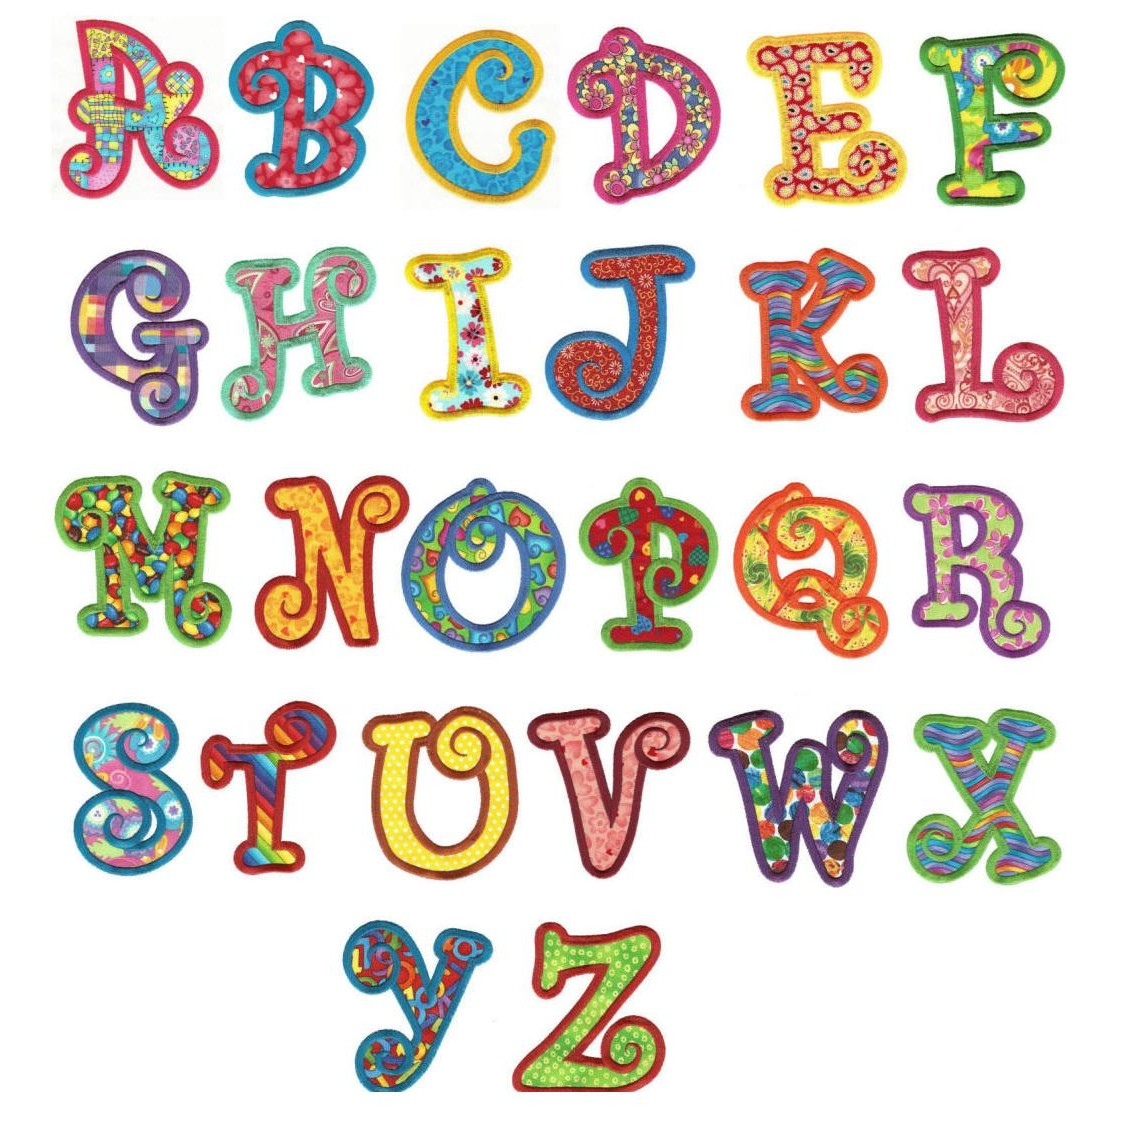 Chunky applique font images embroidery